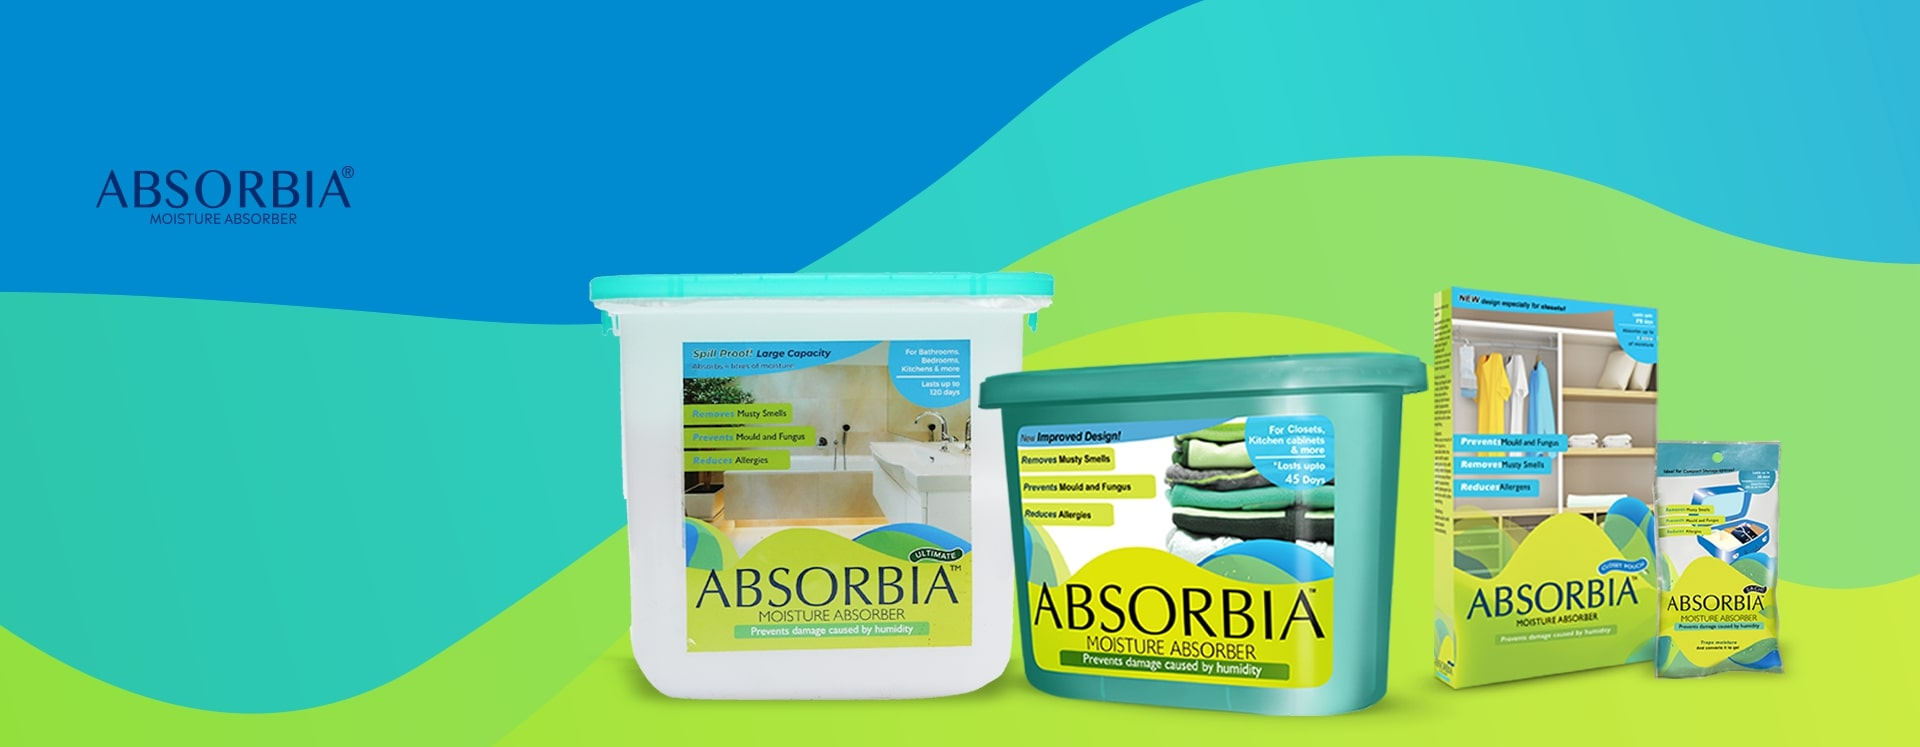 Absorbia products